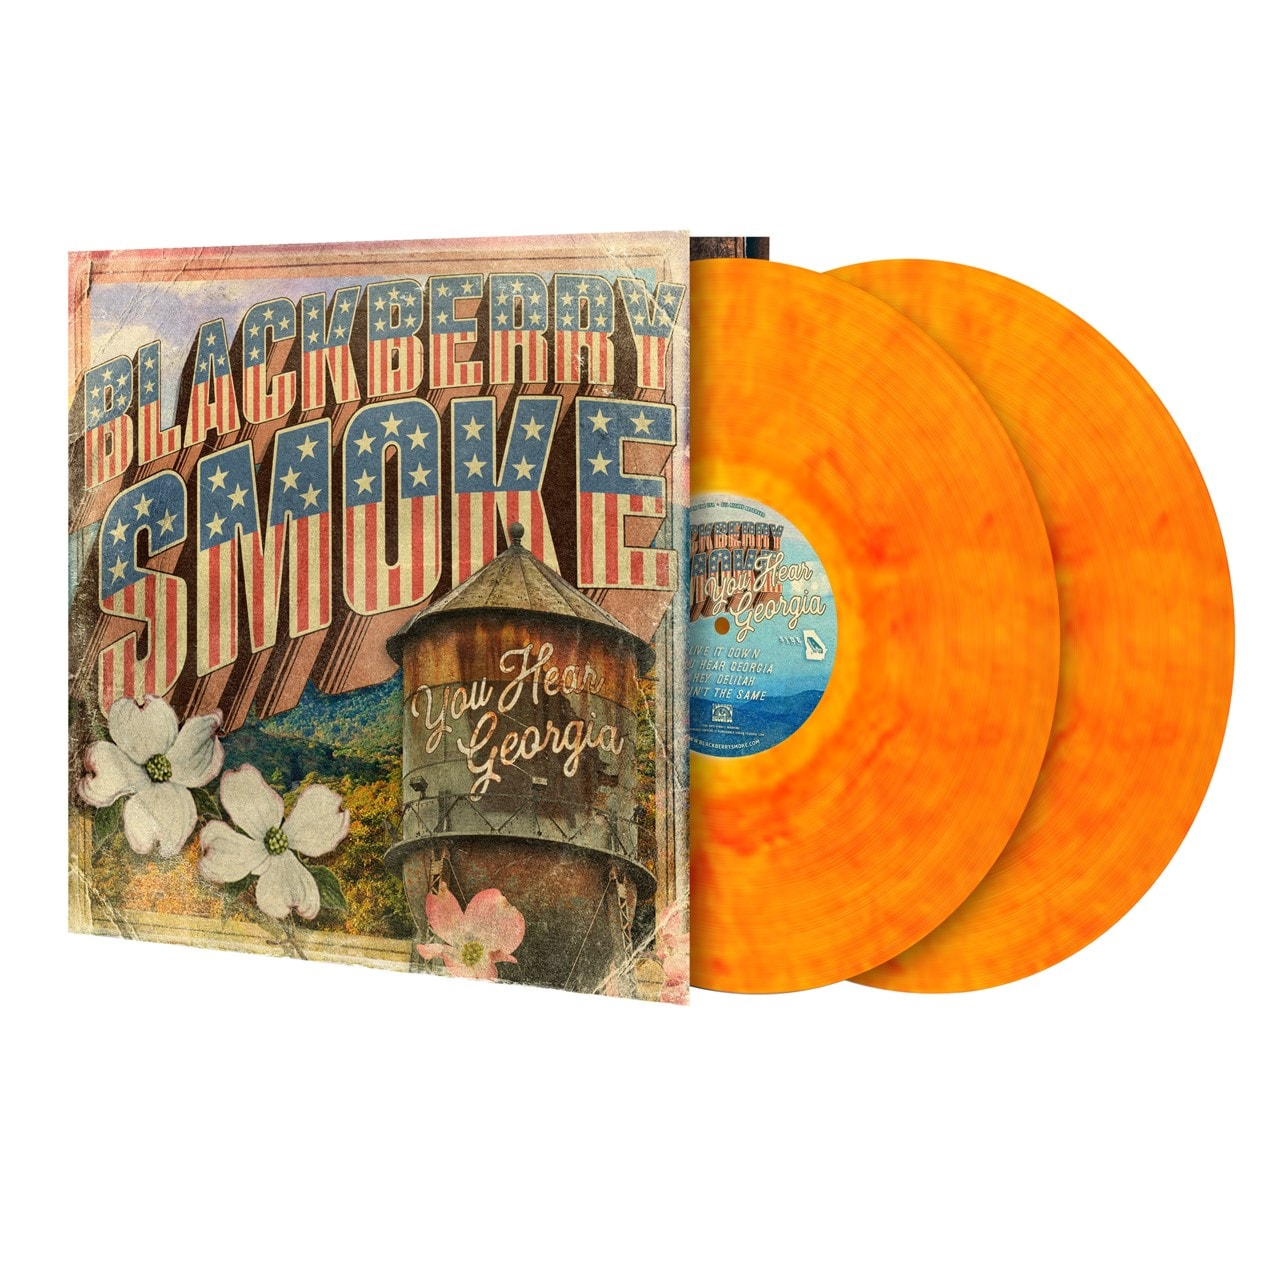 You Hear Georgia Limited Edition Marble Yellow & Red Vinyl - 1